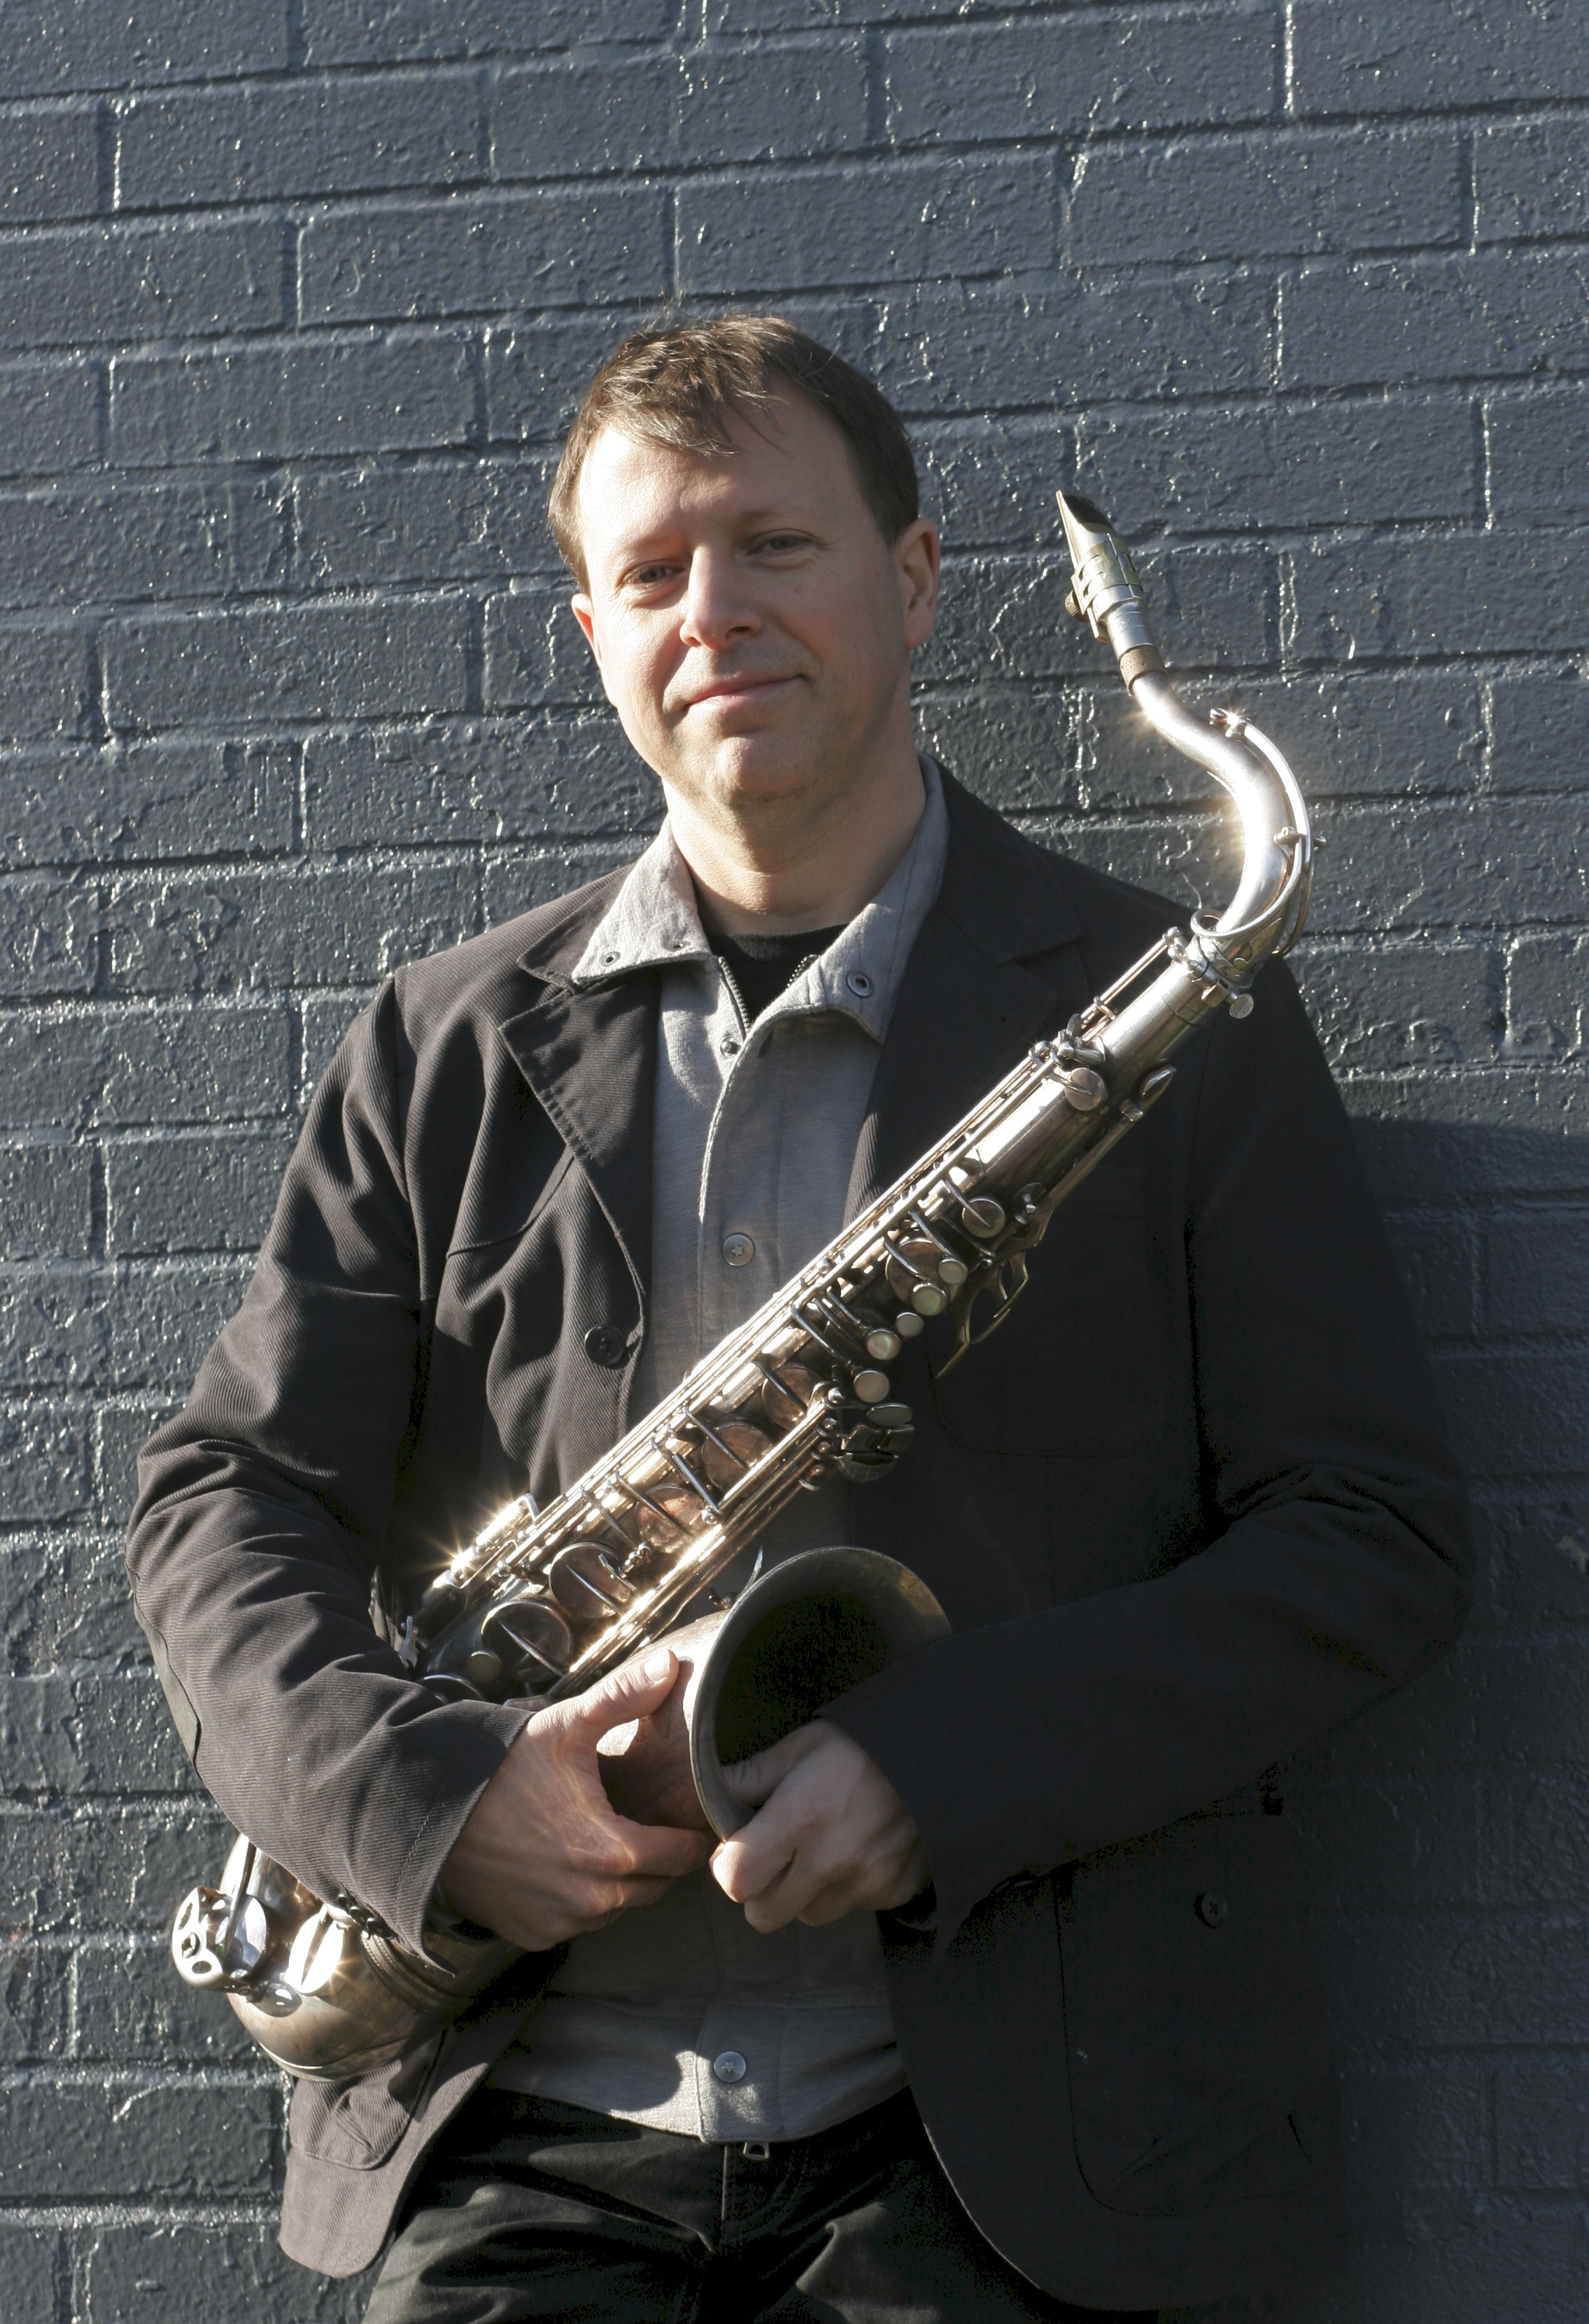 """Chris Potter - A world-class soloist, accomplished composer and formidable bandleader, saxophonist Chris Potter has emerged as a leading light of his generation. Down Beat called him """"One of the most studied (and copied) saxophonists on the planet"""" while Jazz Times identified him as """"a figure of international renown."""" Jazz sax elder statesman Dave Liebman called him simply, """"one of the best musicians around,"""" a sentiment shared by the readers of Down Beat in voting him second only to tenor sax great Sonny Rollins in the magazine's 2008 Readers Poll.A potent improvisor and the youngest musician ever to win Denmark's Jazzpar Prize, Potter's impressive discography includes 15 albums as a leader and sideman appearances on over 100 albums. He was nominated for a Grammy Award for his solo work on """"In Vogue,"""" a track from Joanne Brackeen's 1999 album Pink Elephant Magic, and was prominently featured on Steely Dan's Grammy- winning album from 2000, Two Against Nature. He has performed or recorded with many of the leading names in jazz, such as Herbie Hancock, Dave Holland, John Scofield, the Mingus Big Band, Jim Hall, Paul Motian, Dave Douglas, Ray Brown and many others.His most recent recording, Ultrahang, is the culmination thus far of five years' work with his Underground quartet with Adam Rogers on guitar, Craig Taborn on Fender Rhodes, and Nate Smith on drums. Recorded in the studio in January2009 after extensive touring, it showcases the band at its freewheeling yet cohesive best.Since bursting onto the New York scene in 1989 as an 18-year-old prodigy with bebop icon Red Rodney (who himself had played as a young man alongside the legendary Charlie Parker), Potter has steered a steady course of growth as an instrumentalist and composer-arranger. Through the '90s, he continued to gain invaluable bandstand experience as a sideman while also making strong statements as a bandleader-composer-arranger. Acclaimed outings like 1997's Unspoken (with bassist and mentor Dave Hol"""